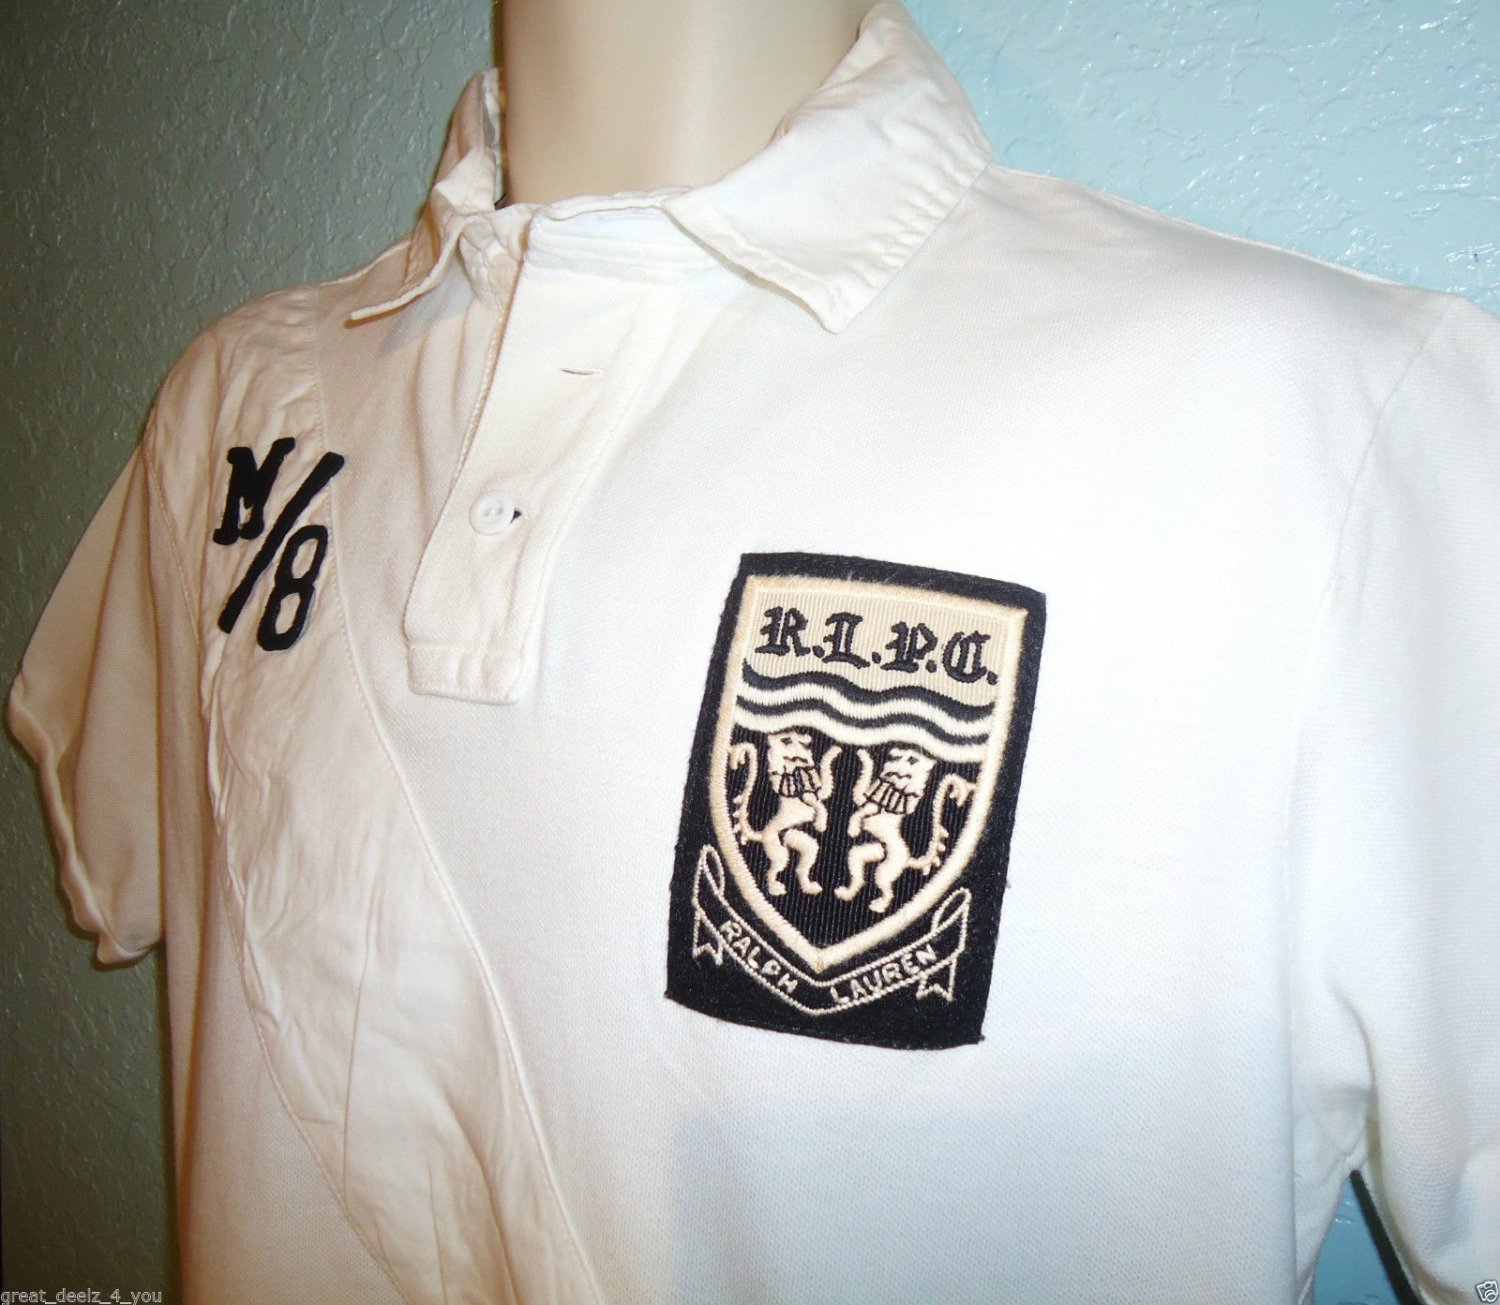 RALPH LAUREN - LARGE - WHITE - BLACK - RUGBY - POLO - SHIRT - NEW - CUSTOM FIT